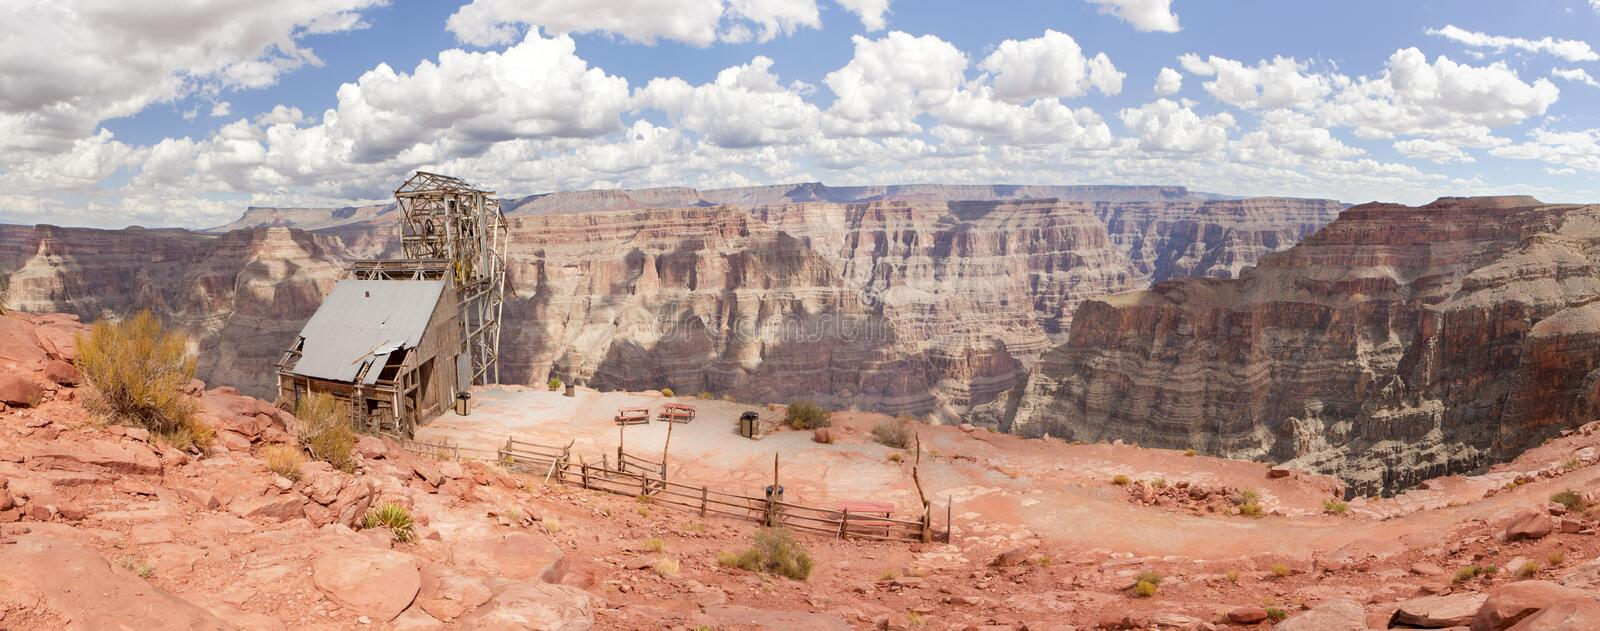 Point de guano - Grand Canyon (jante occidentale) image stock